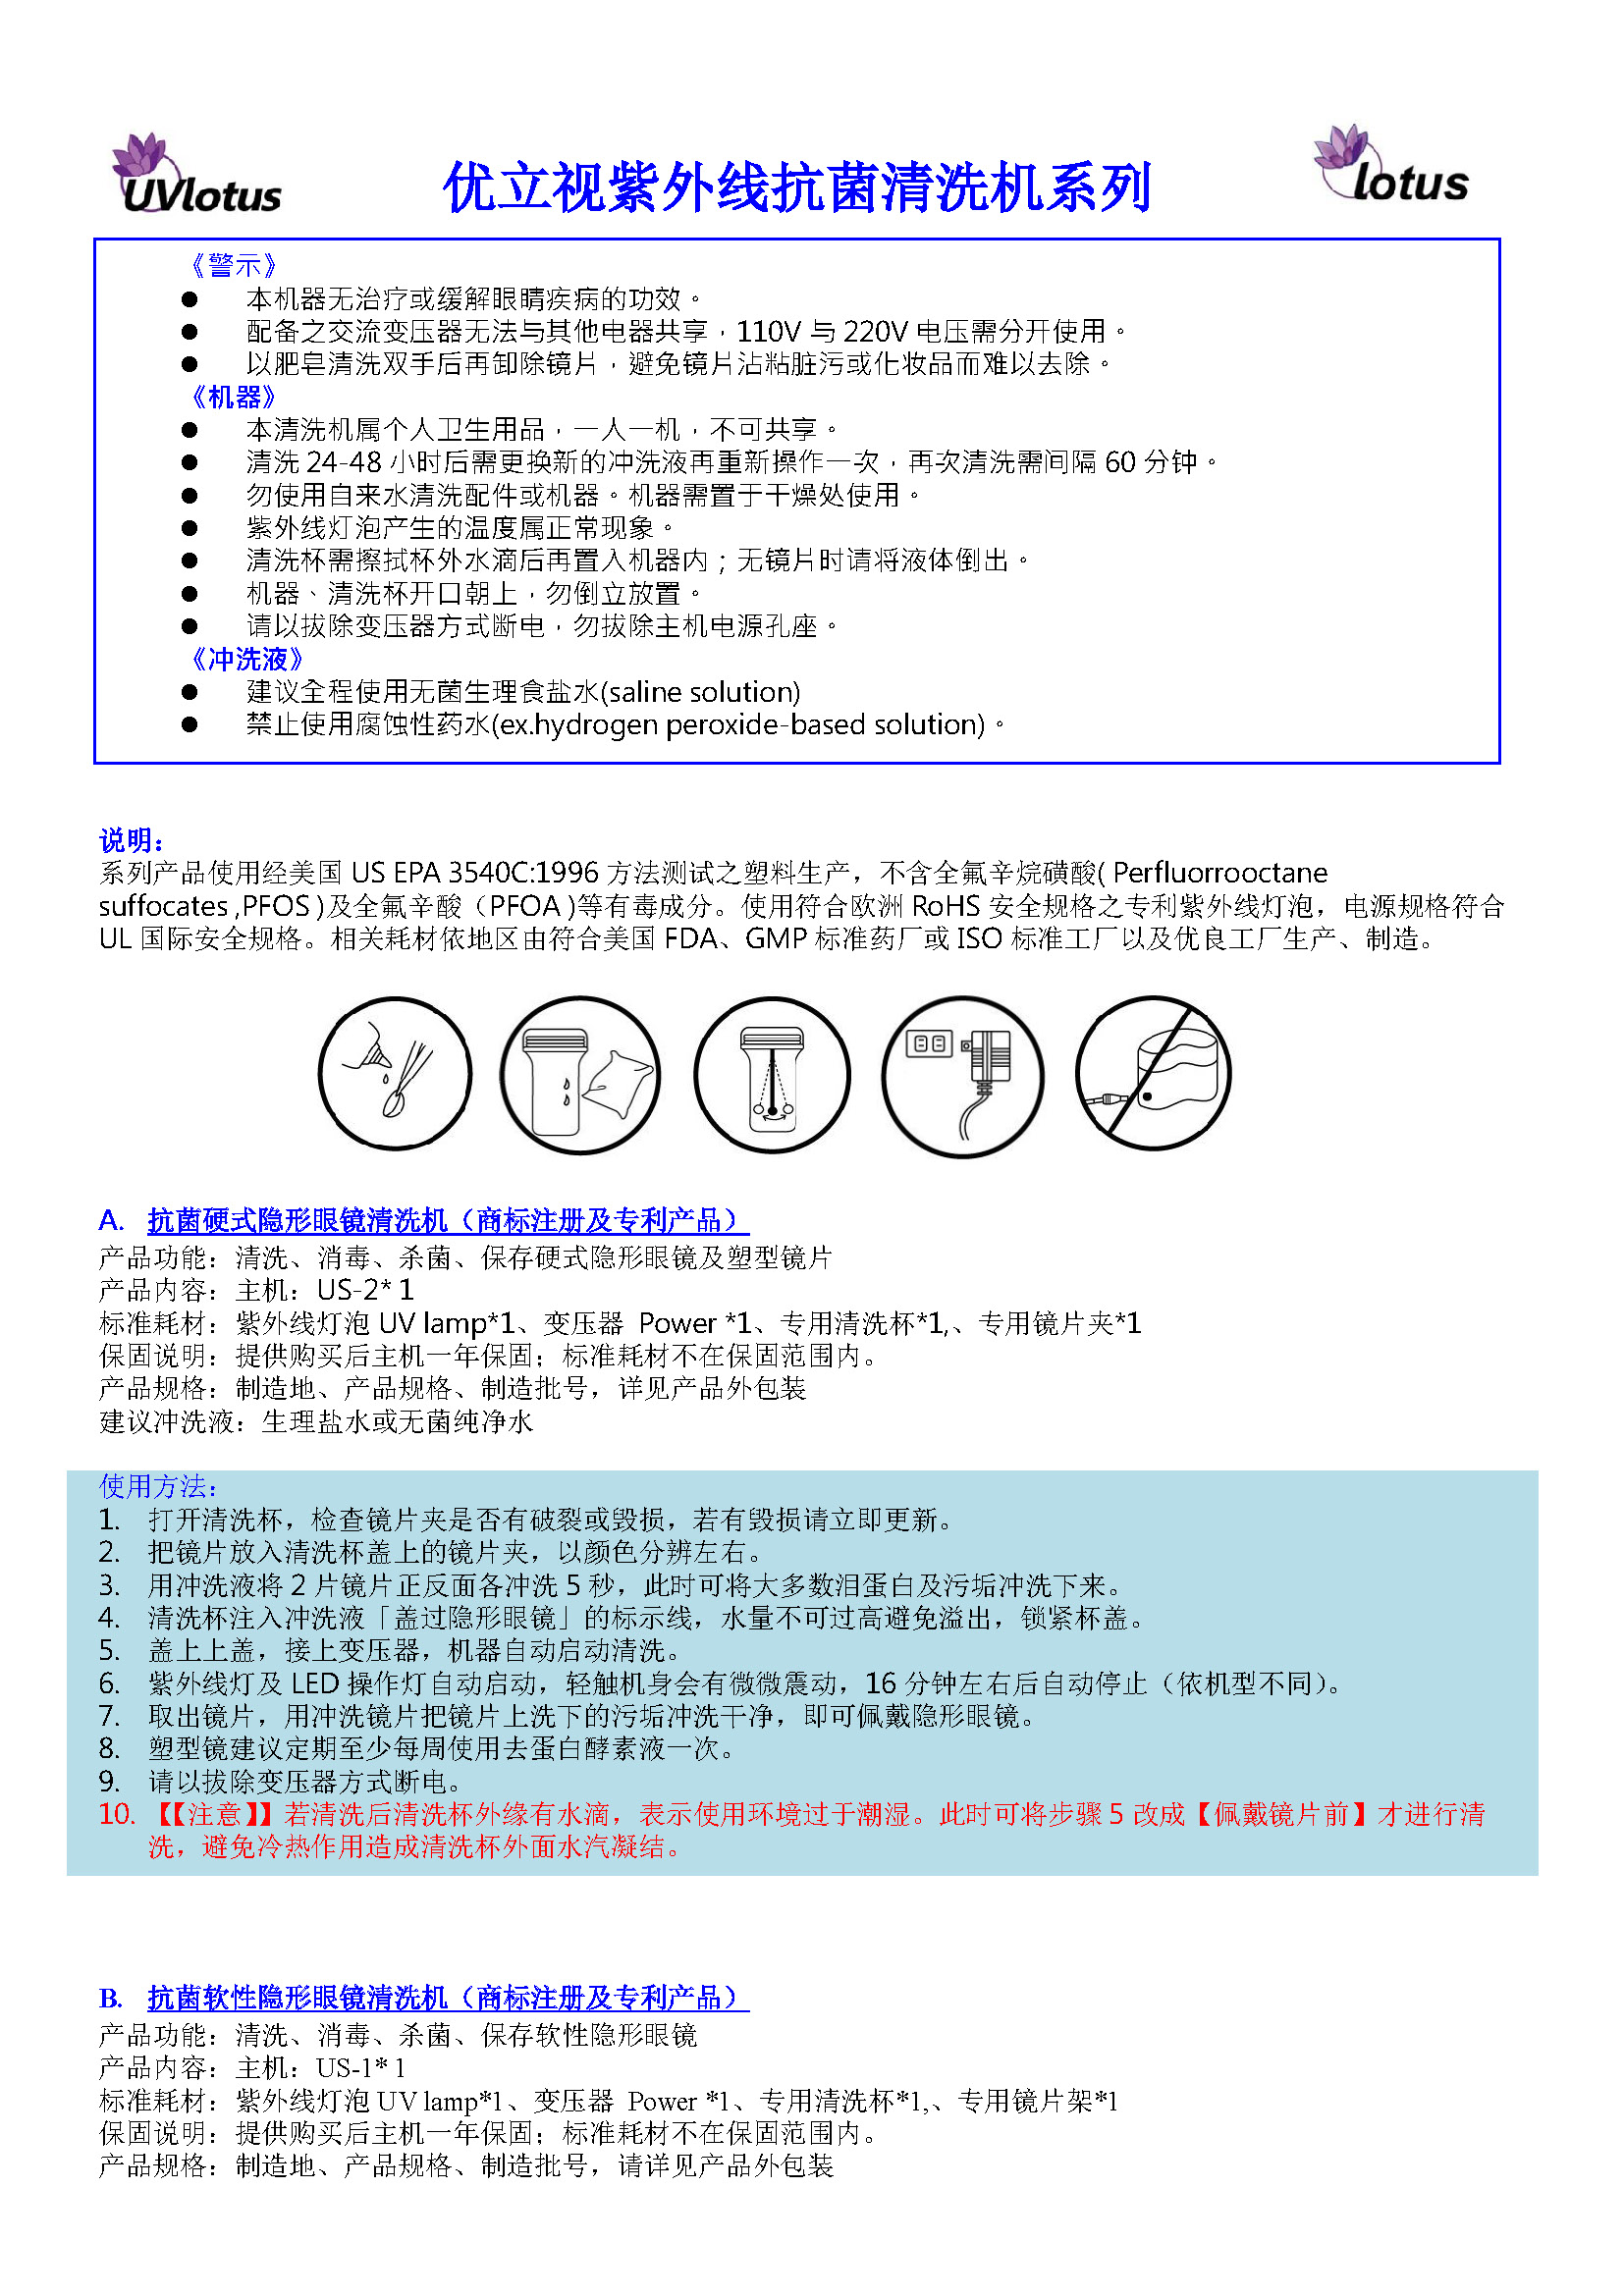 uvlotus user guide china-1